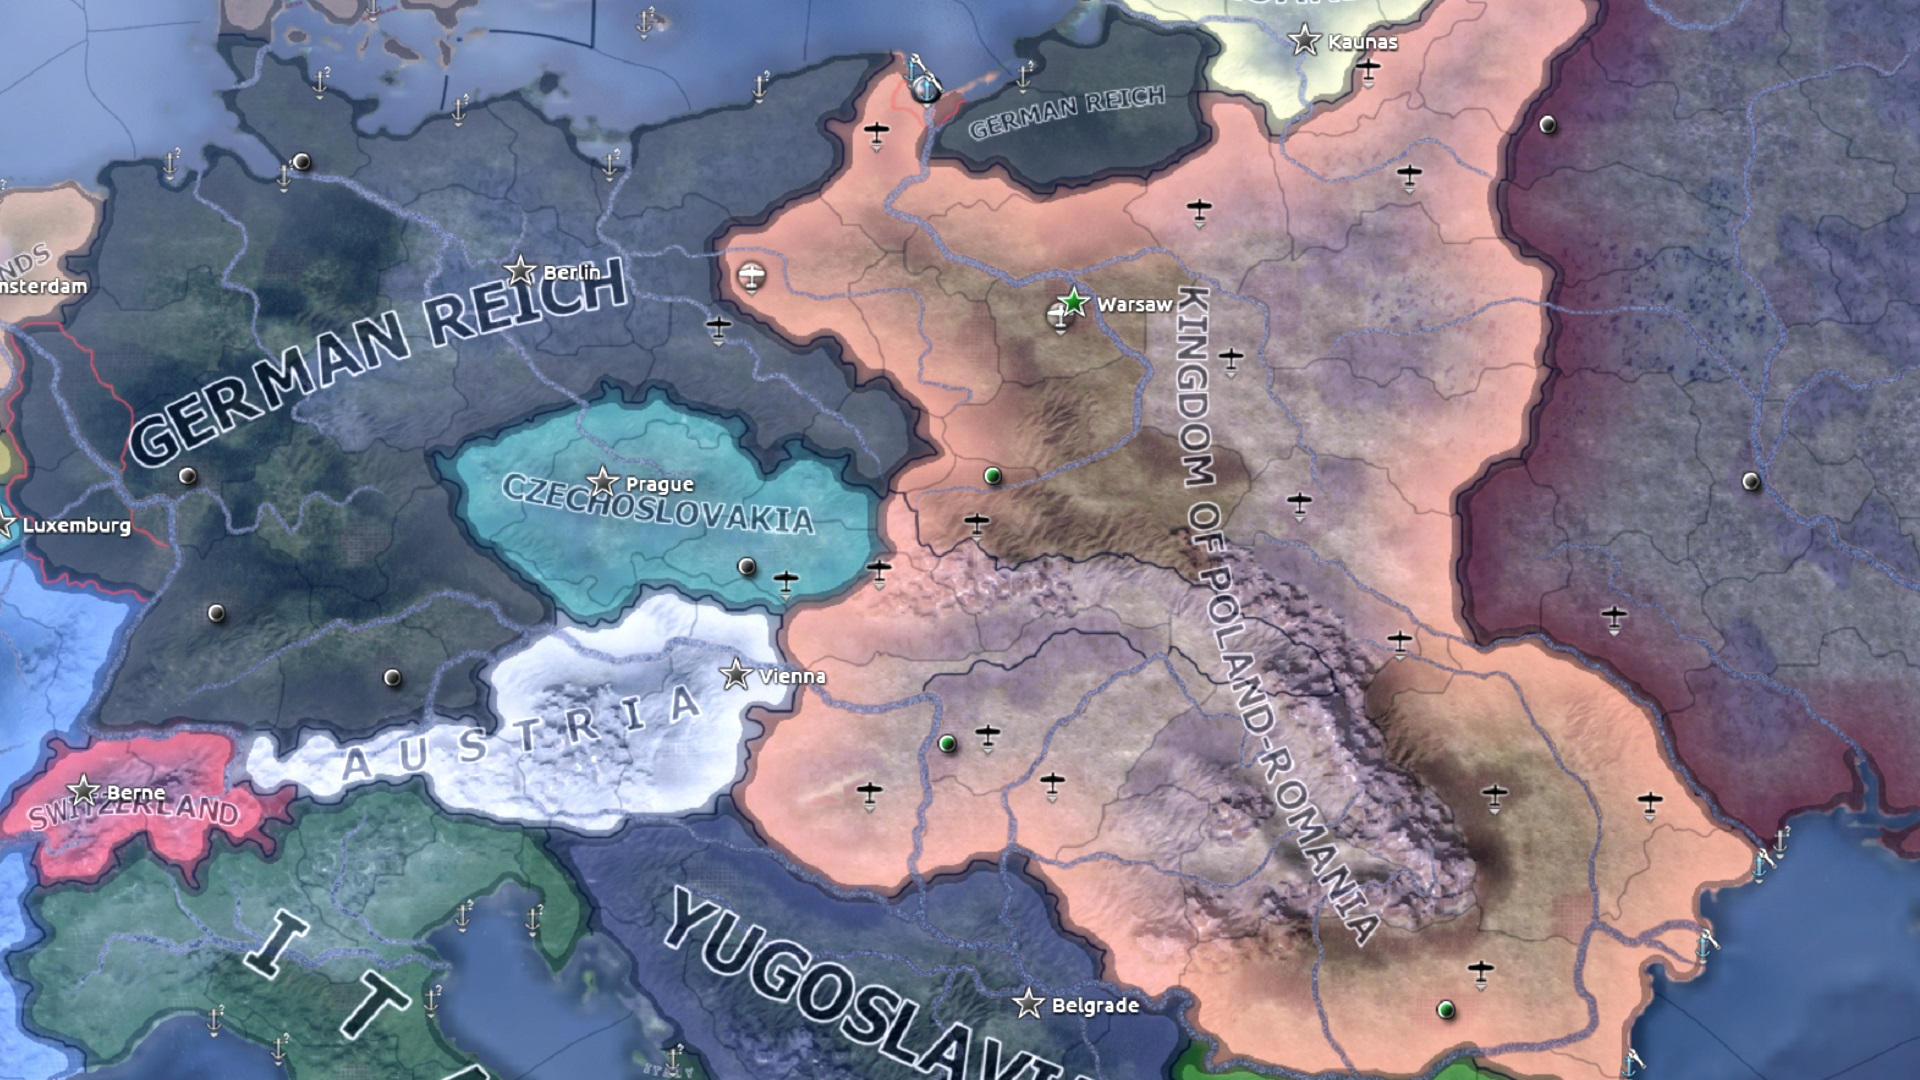 Hearts of Iron 4's new DLC and patch will explore Poland's rich, alternative, history